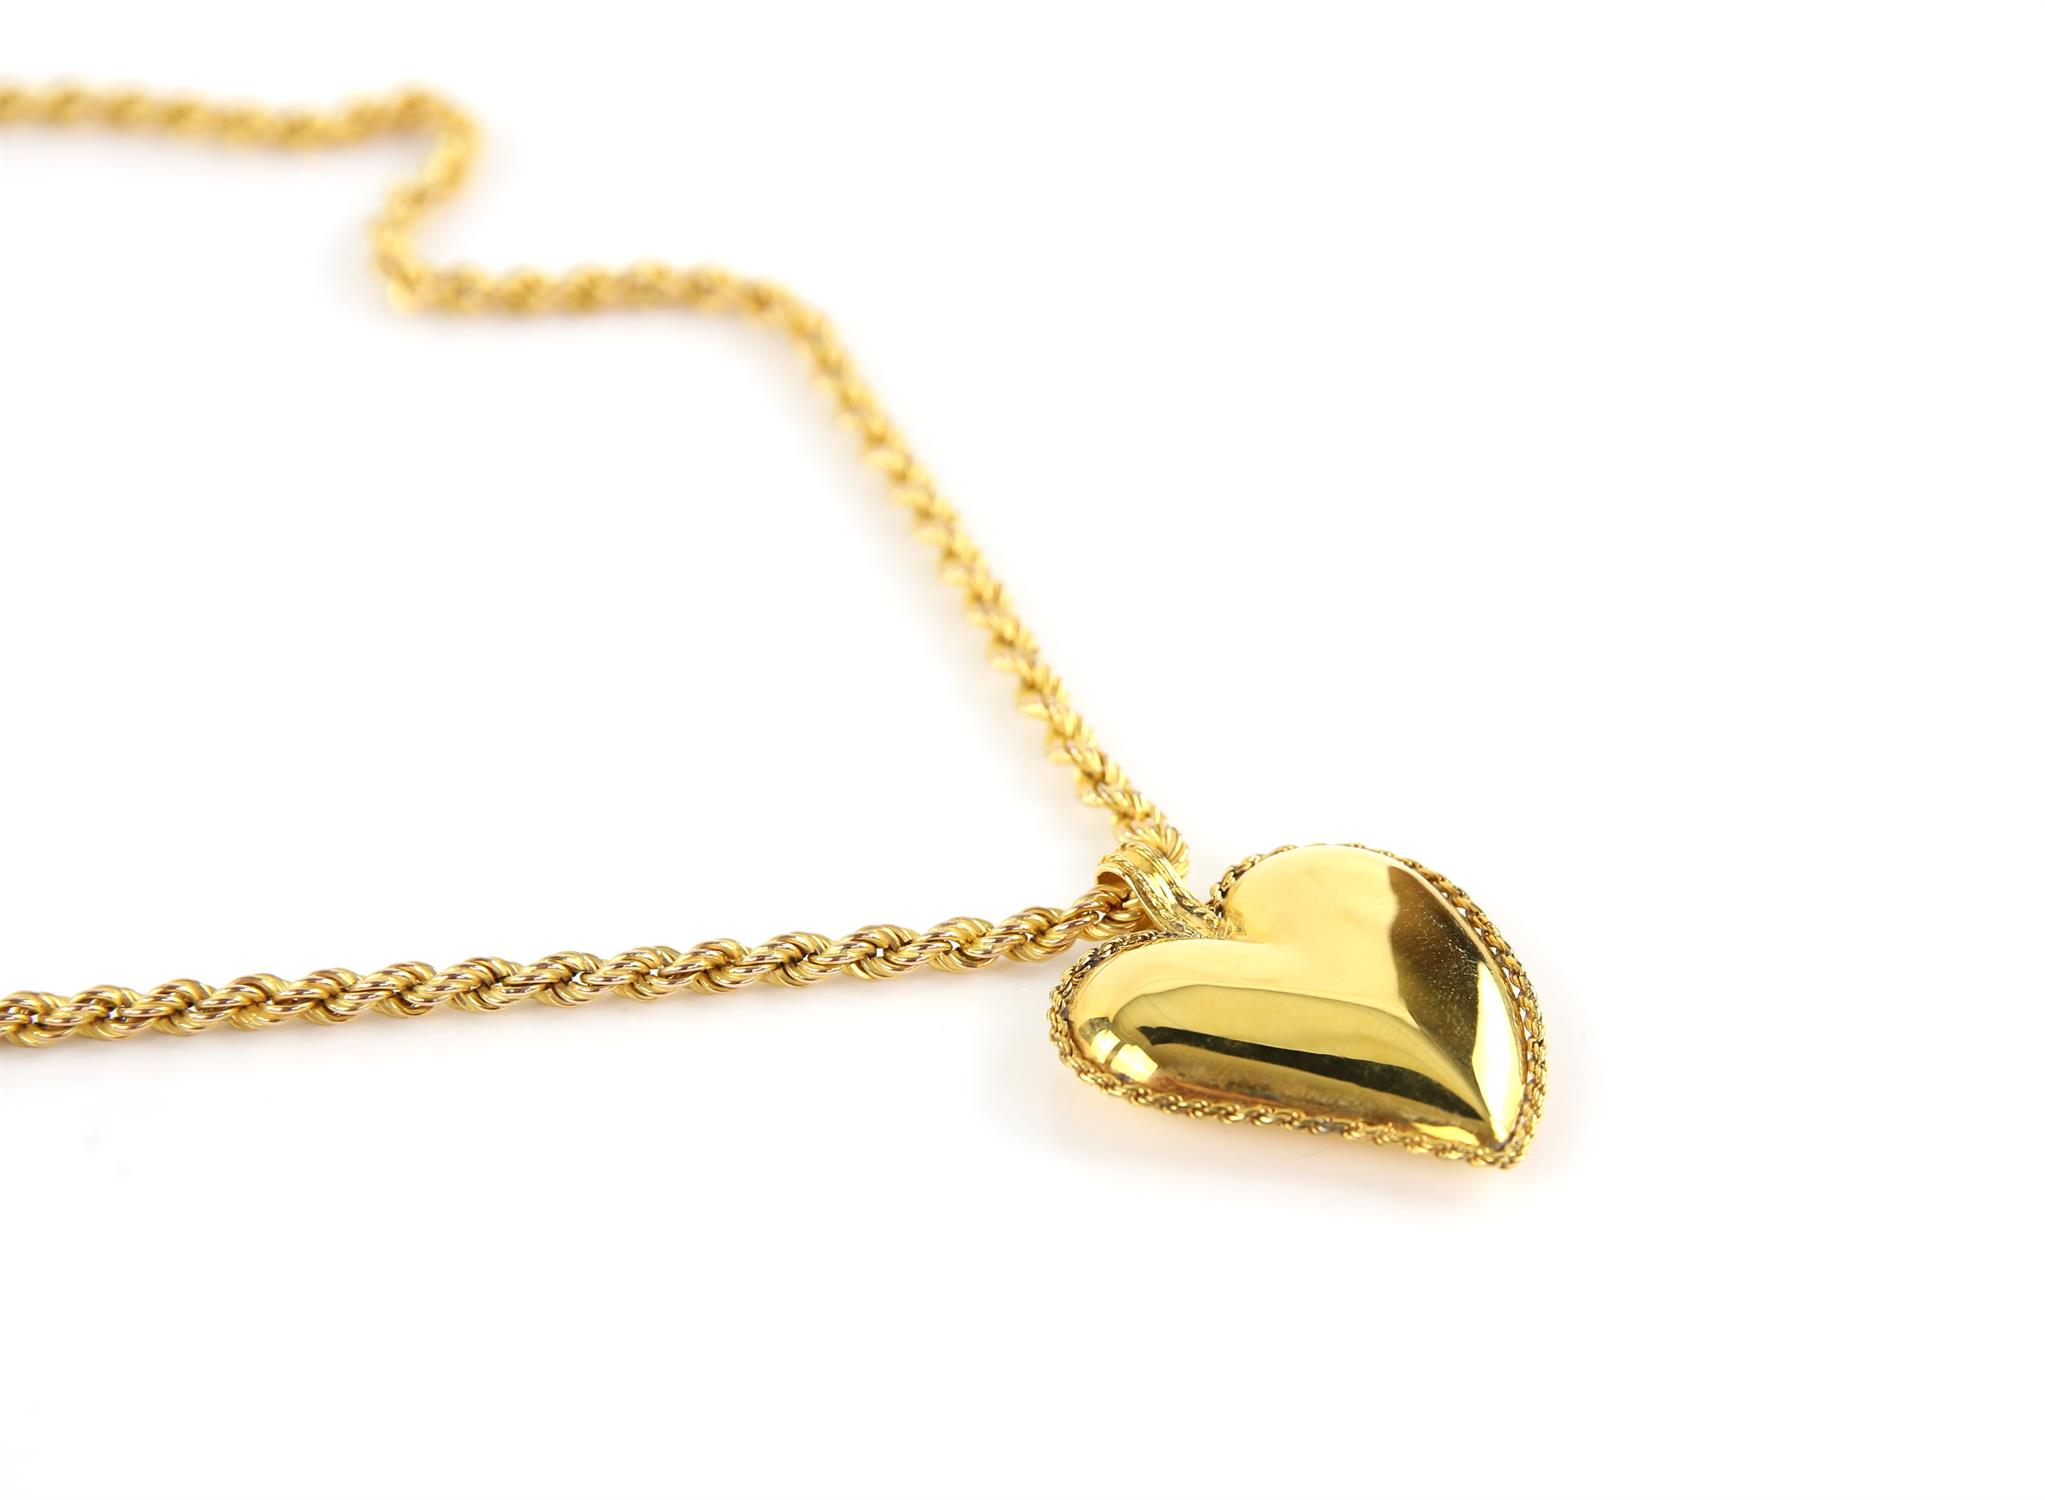 Gold heart pendant, designed as a puffed witches heart, in 14 ct, on a rope chain, hallmarked 9 ct, - Image 2 of 2